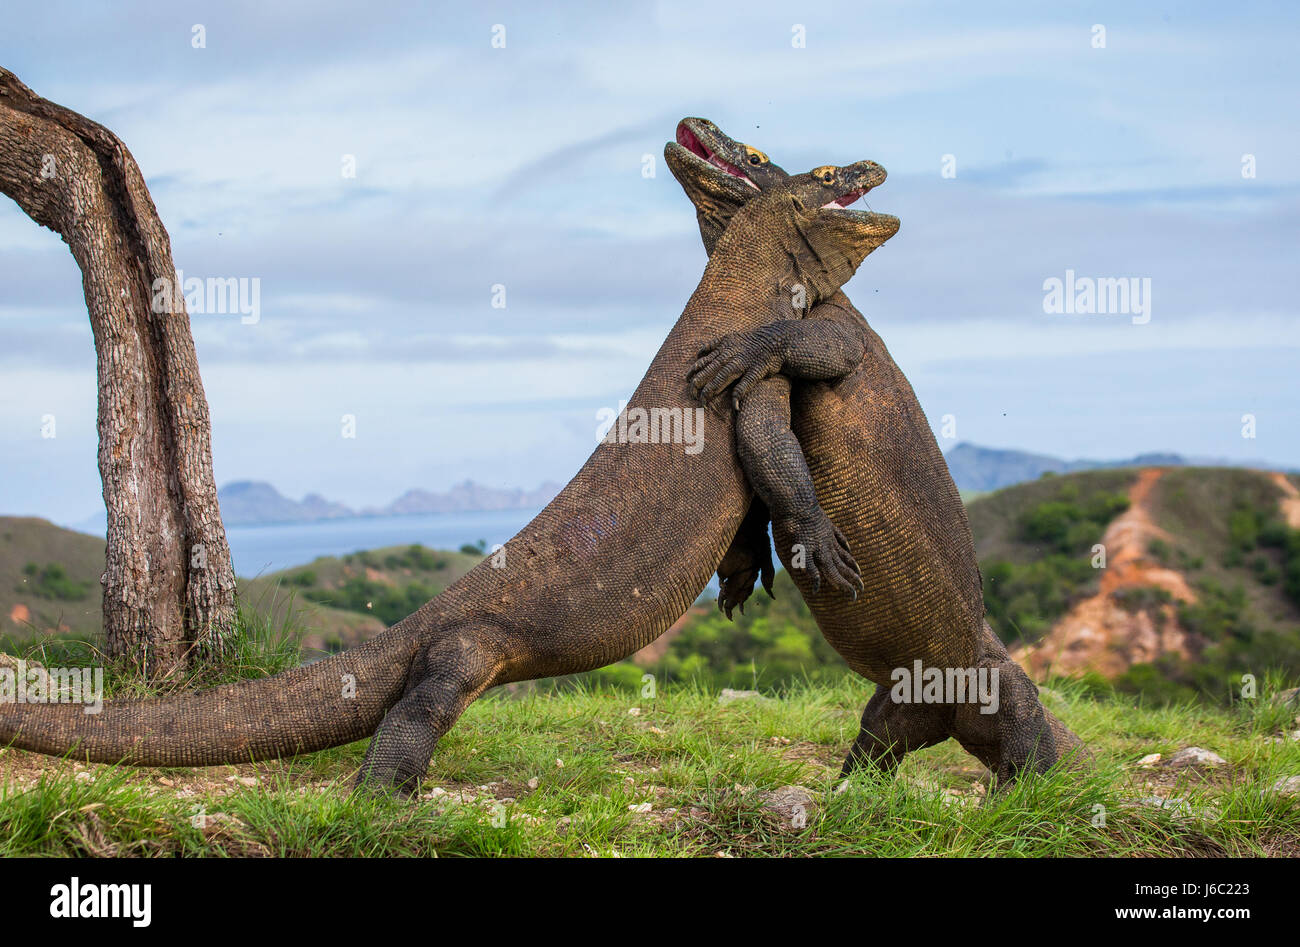 Komodo dragon fighting